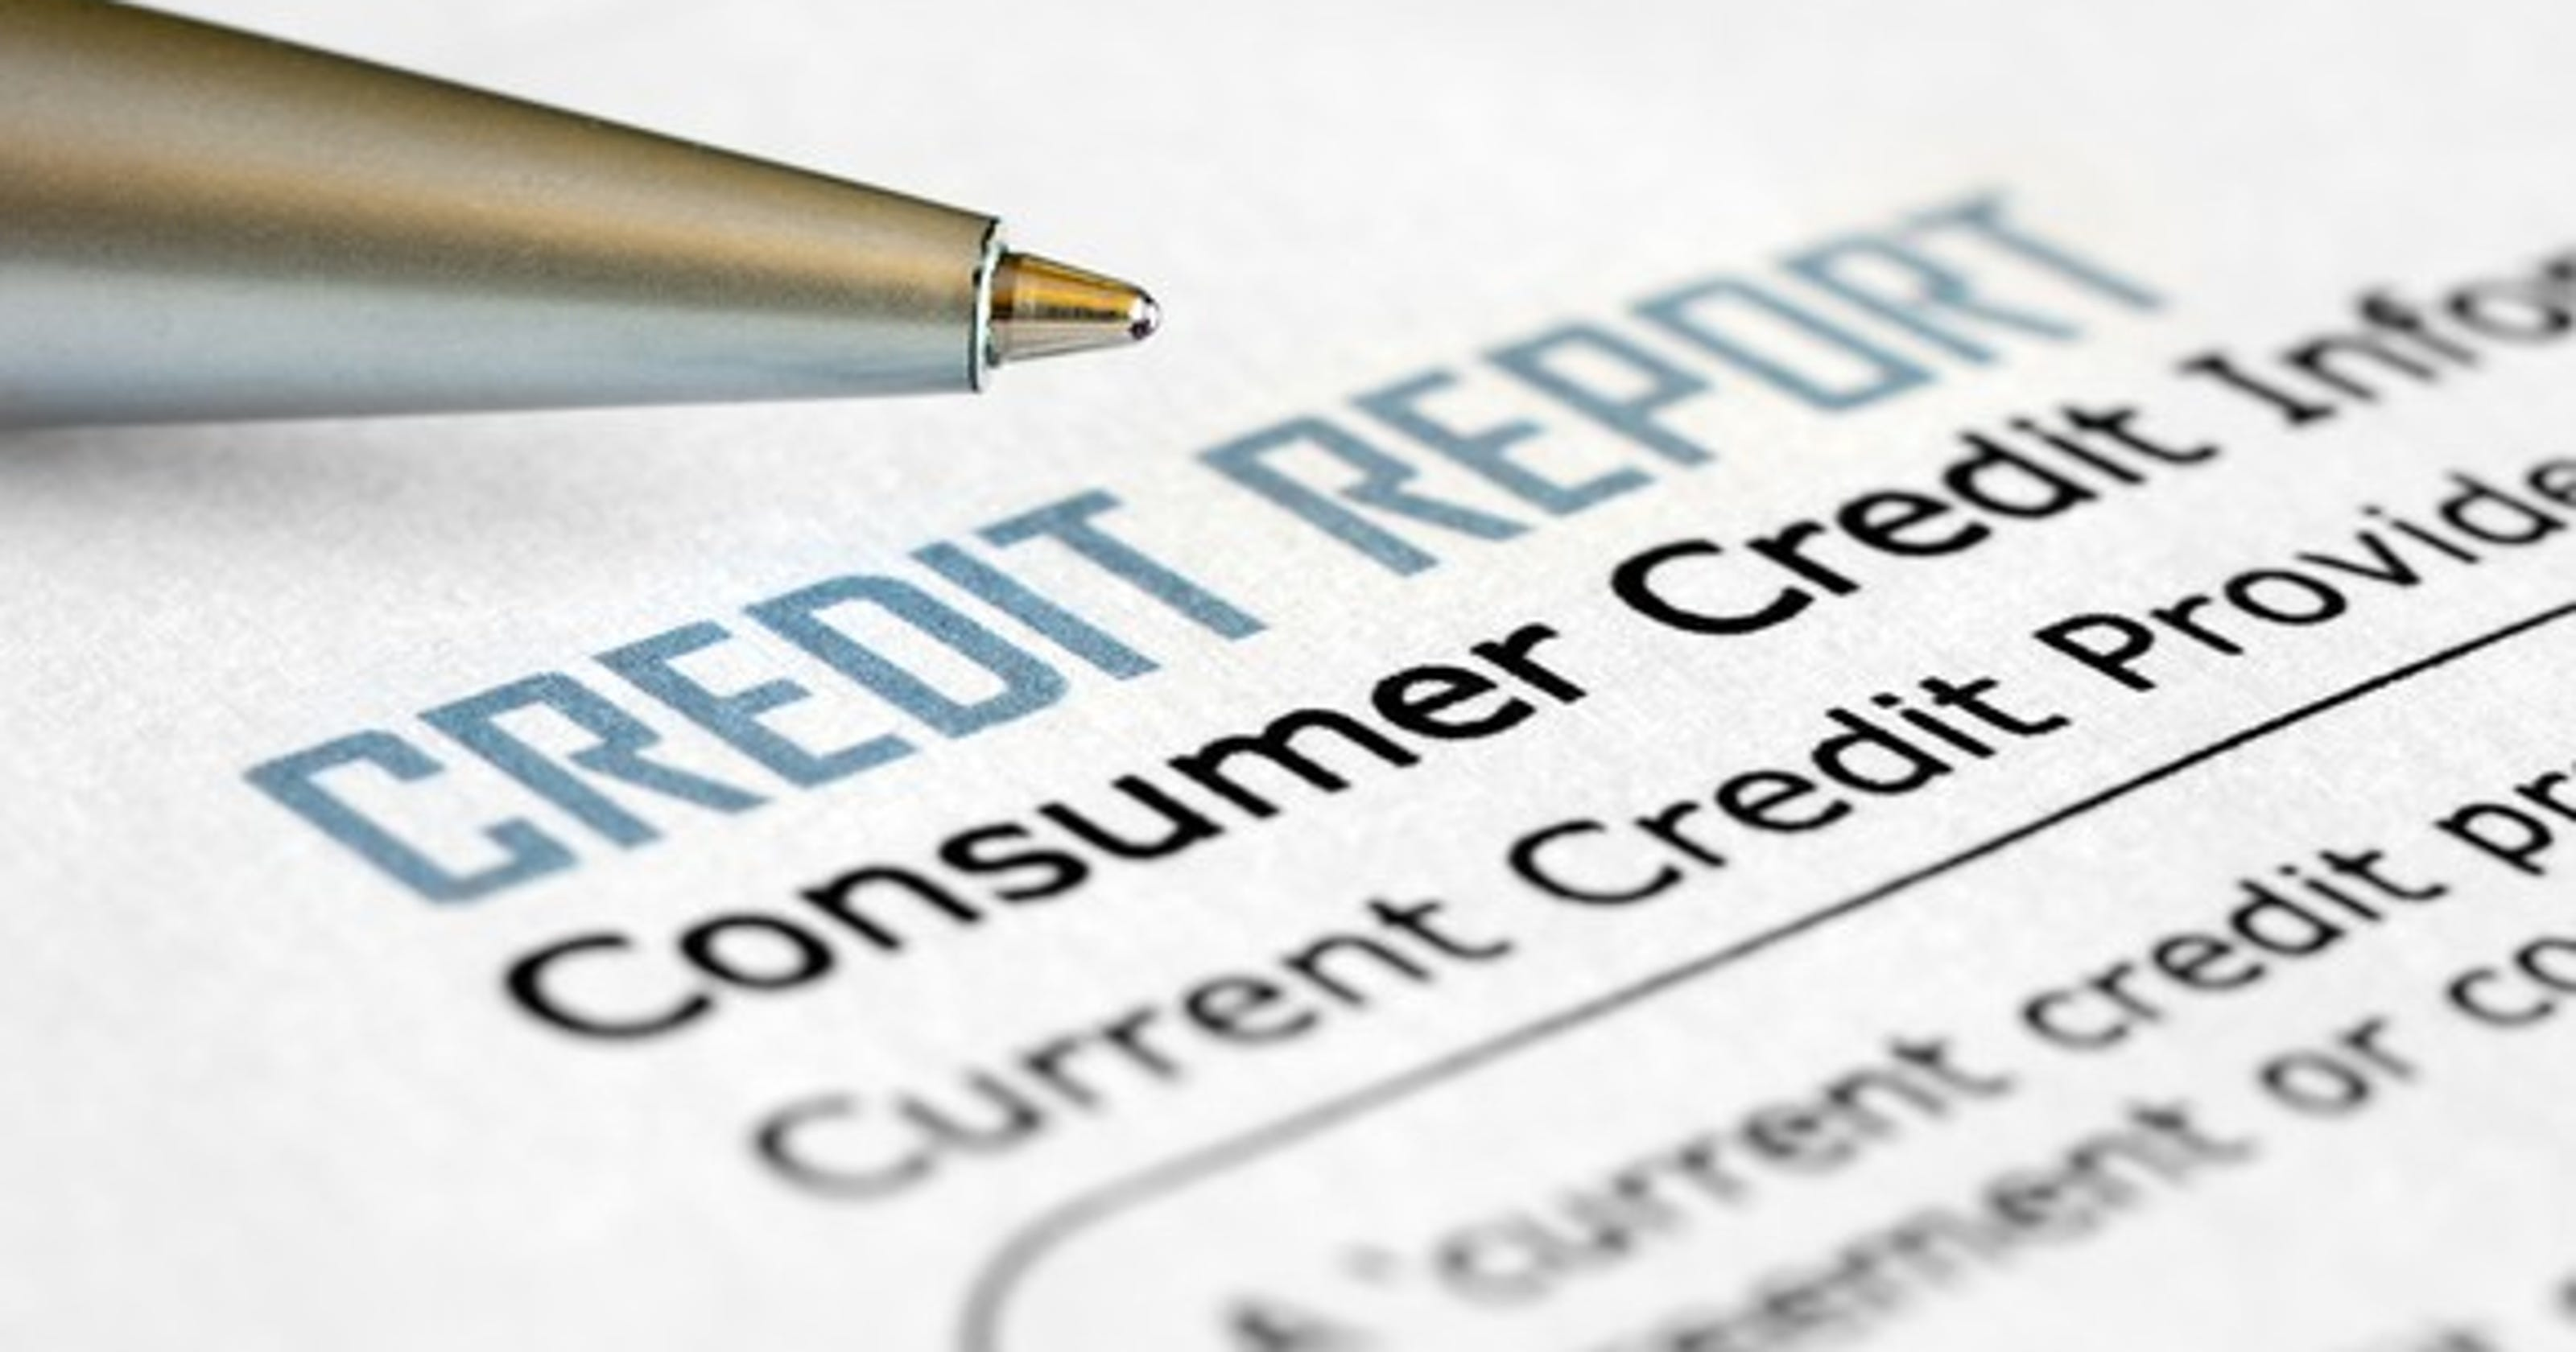 Credit reports: This 5-minute task can protect your banking